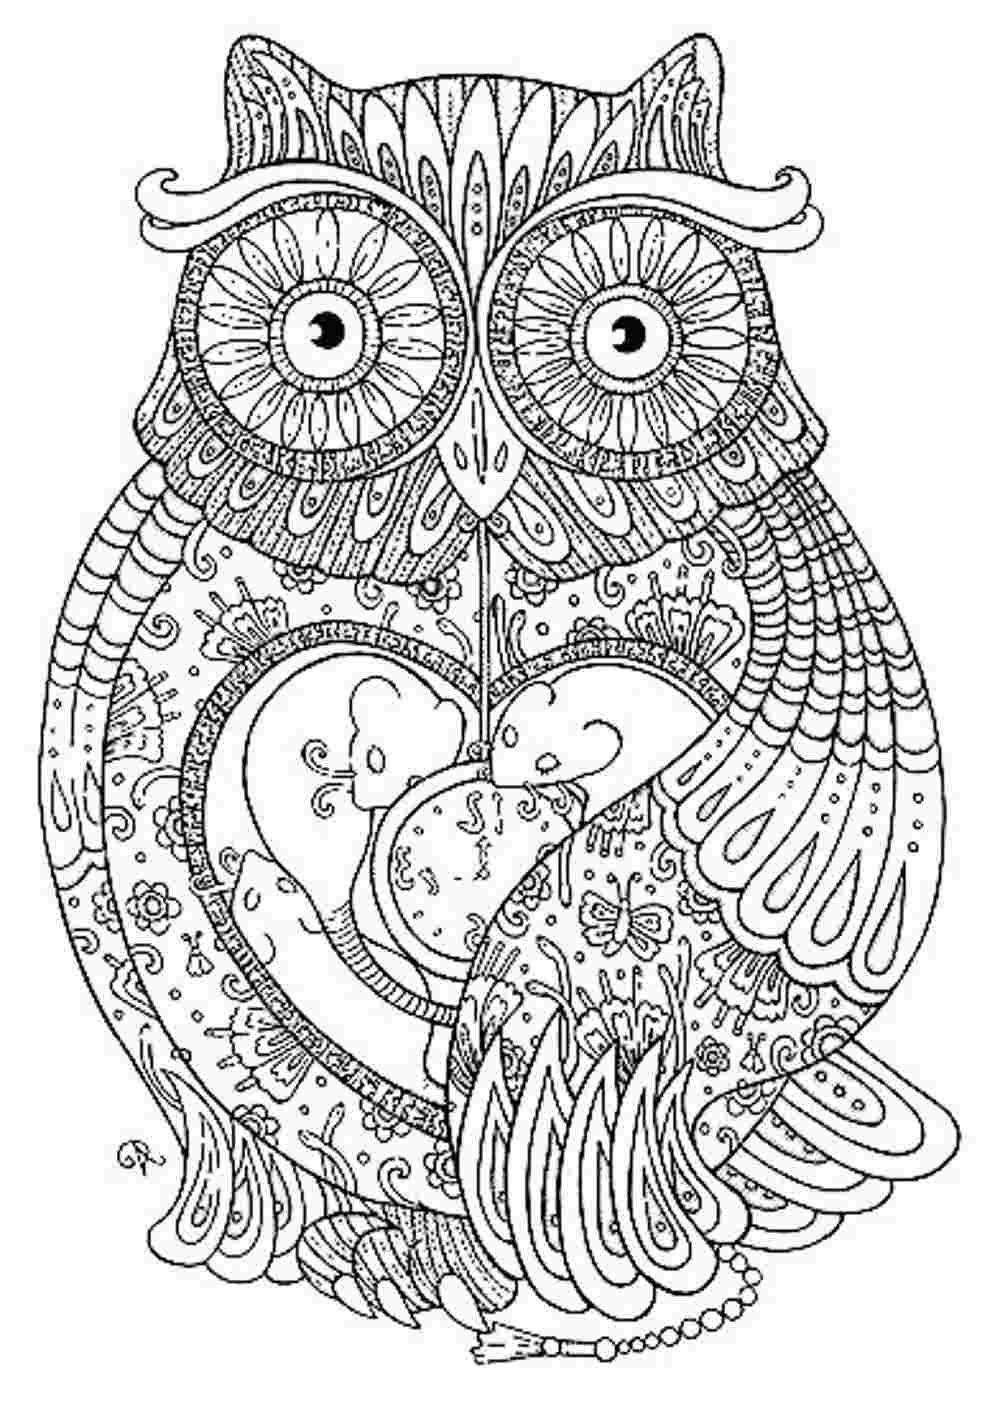 Animal Mandala Coloring Pages To Download And Print For Free | Craft - Mandala Coloring Free Printable